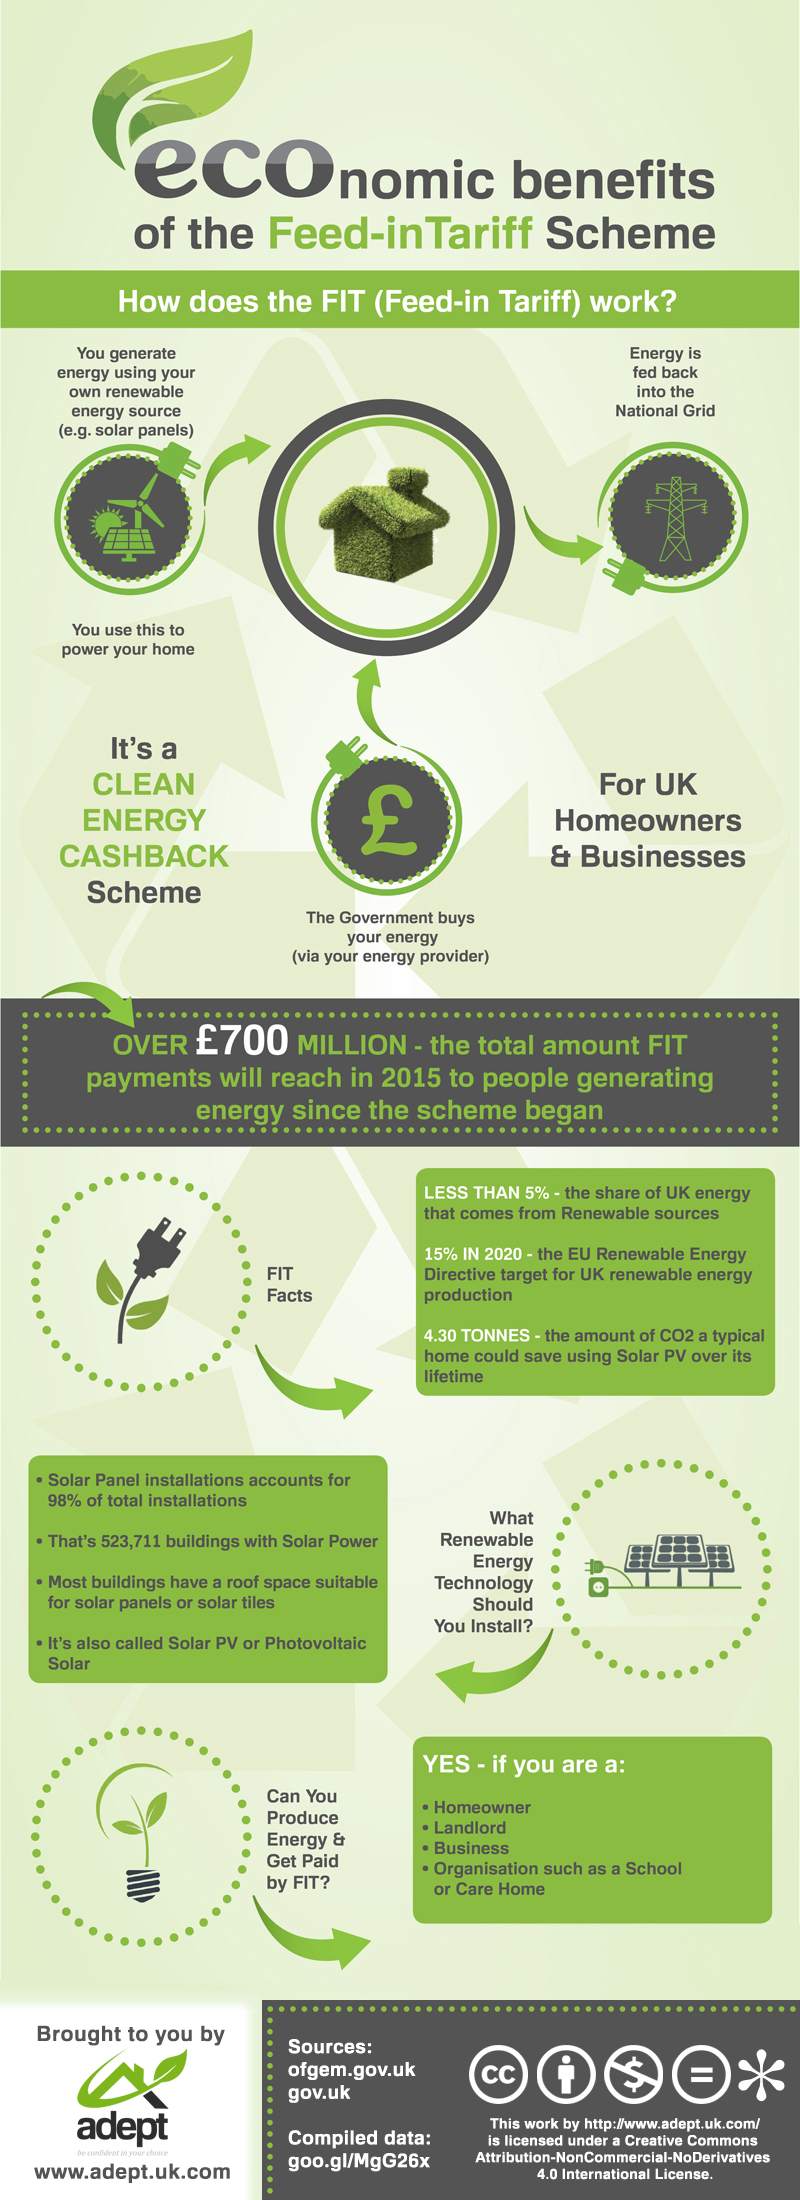 economic-benefits-feed-in-tariff-scheme-infographic